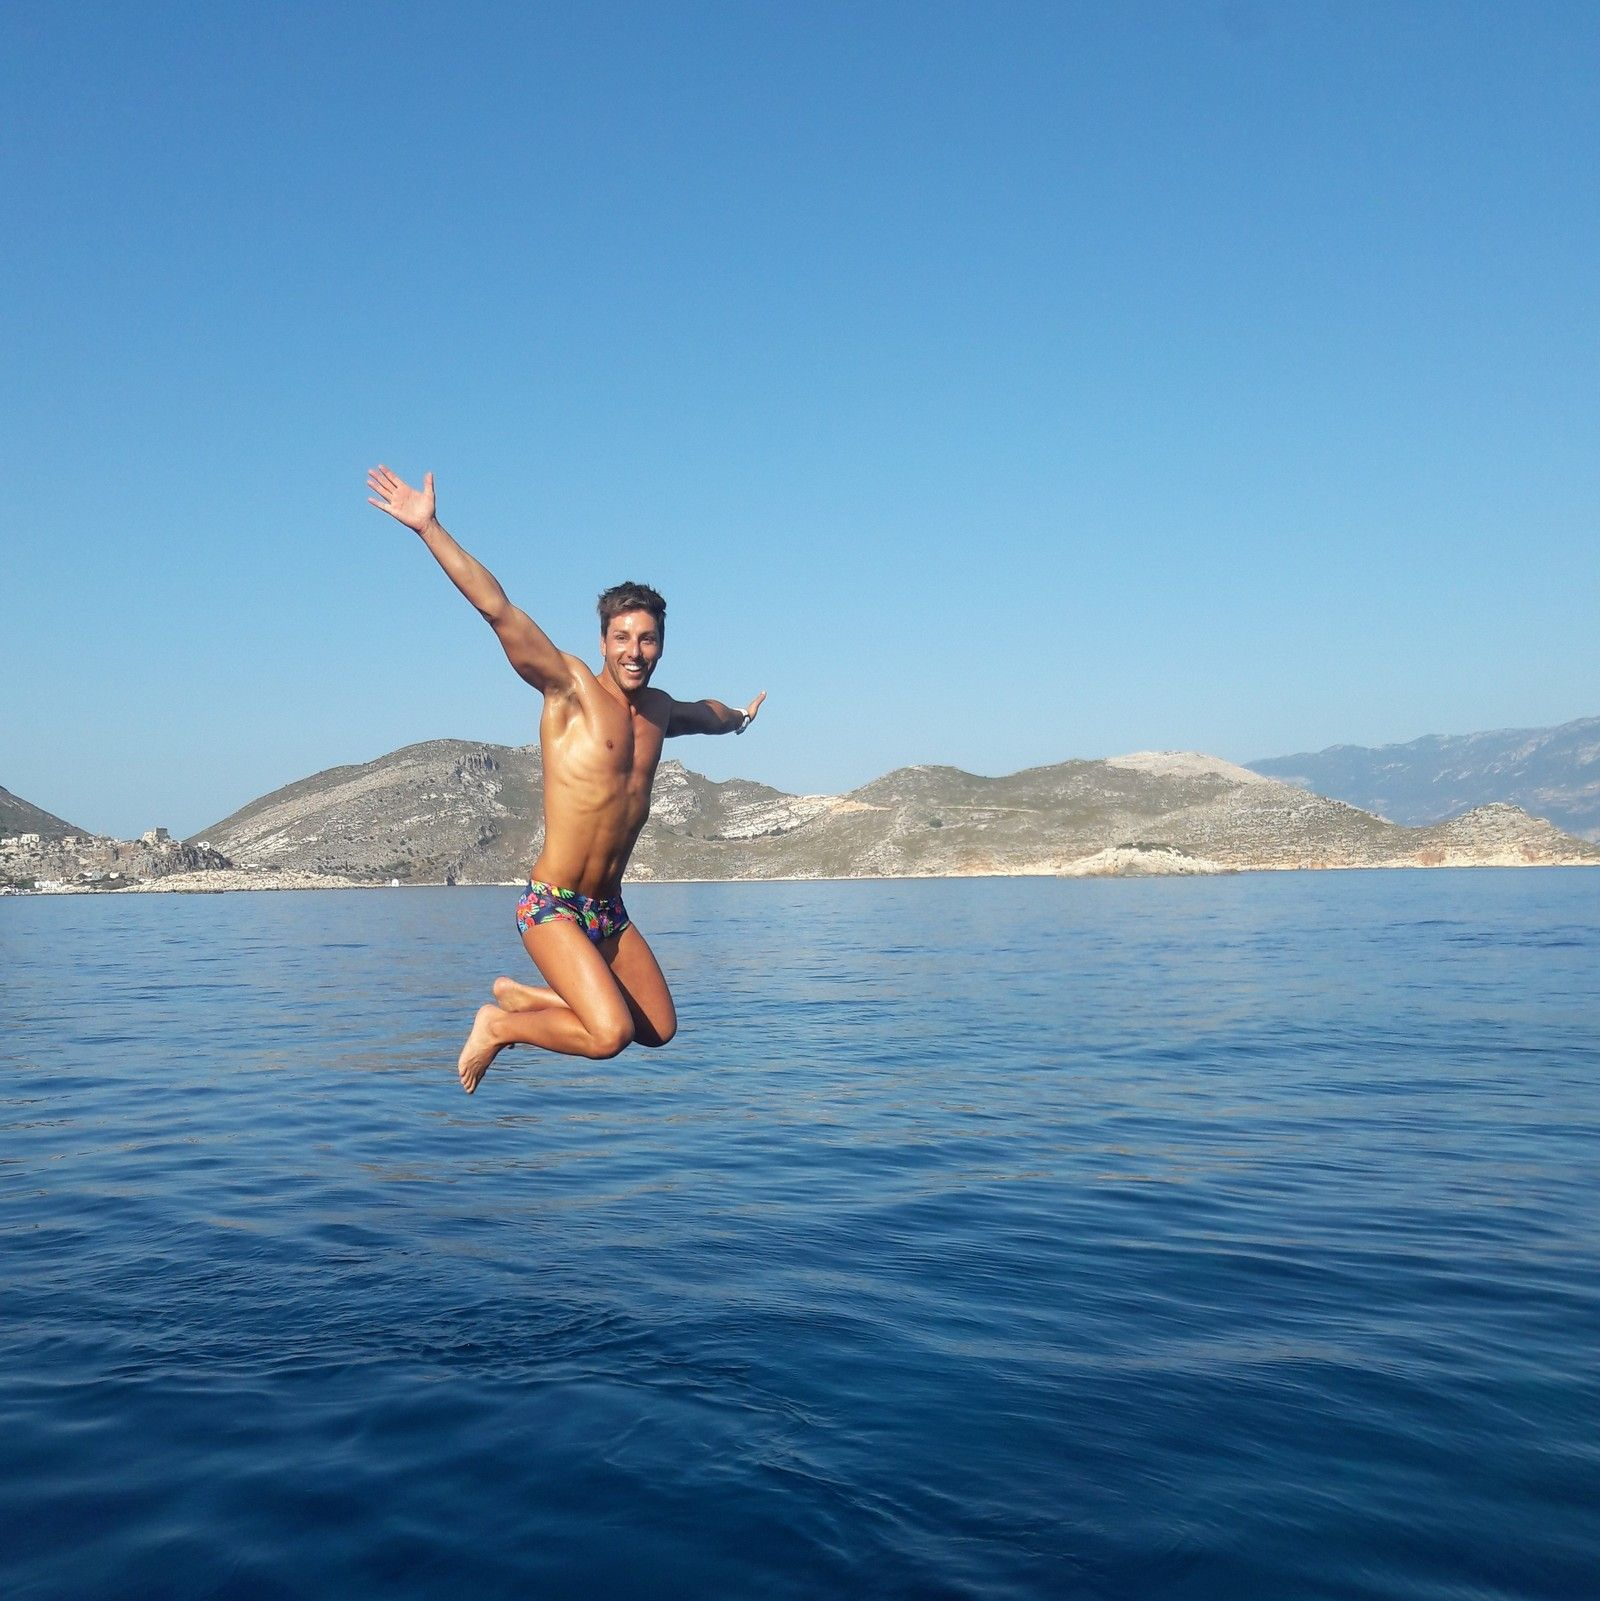 swimming_holidays_kas_turkey_jon_jumping.jpg